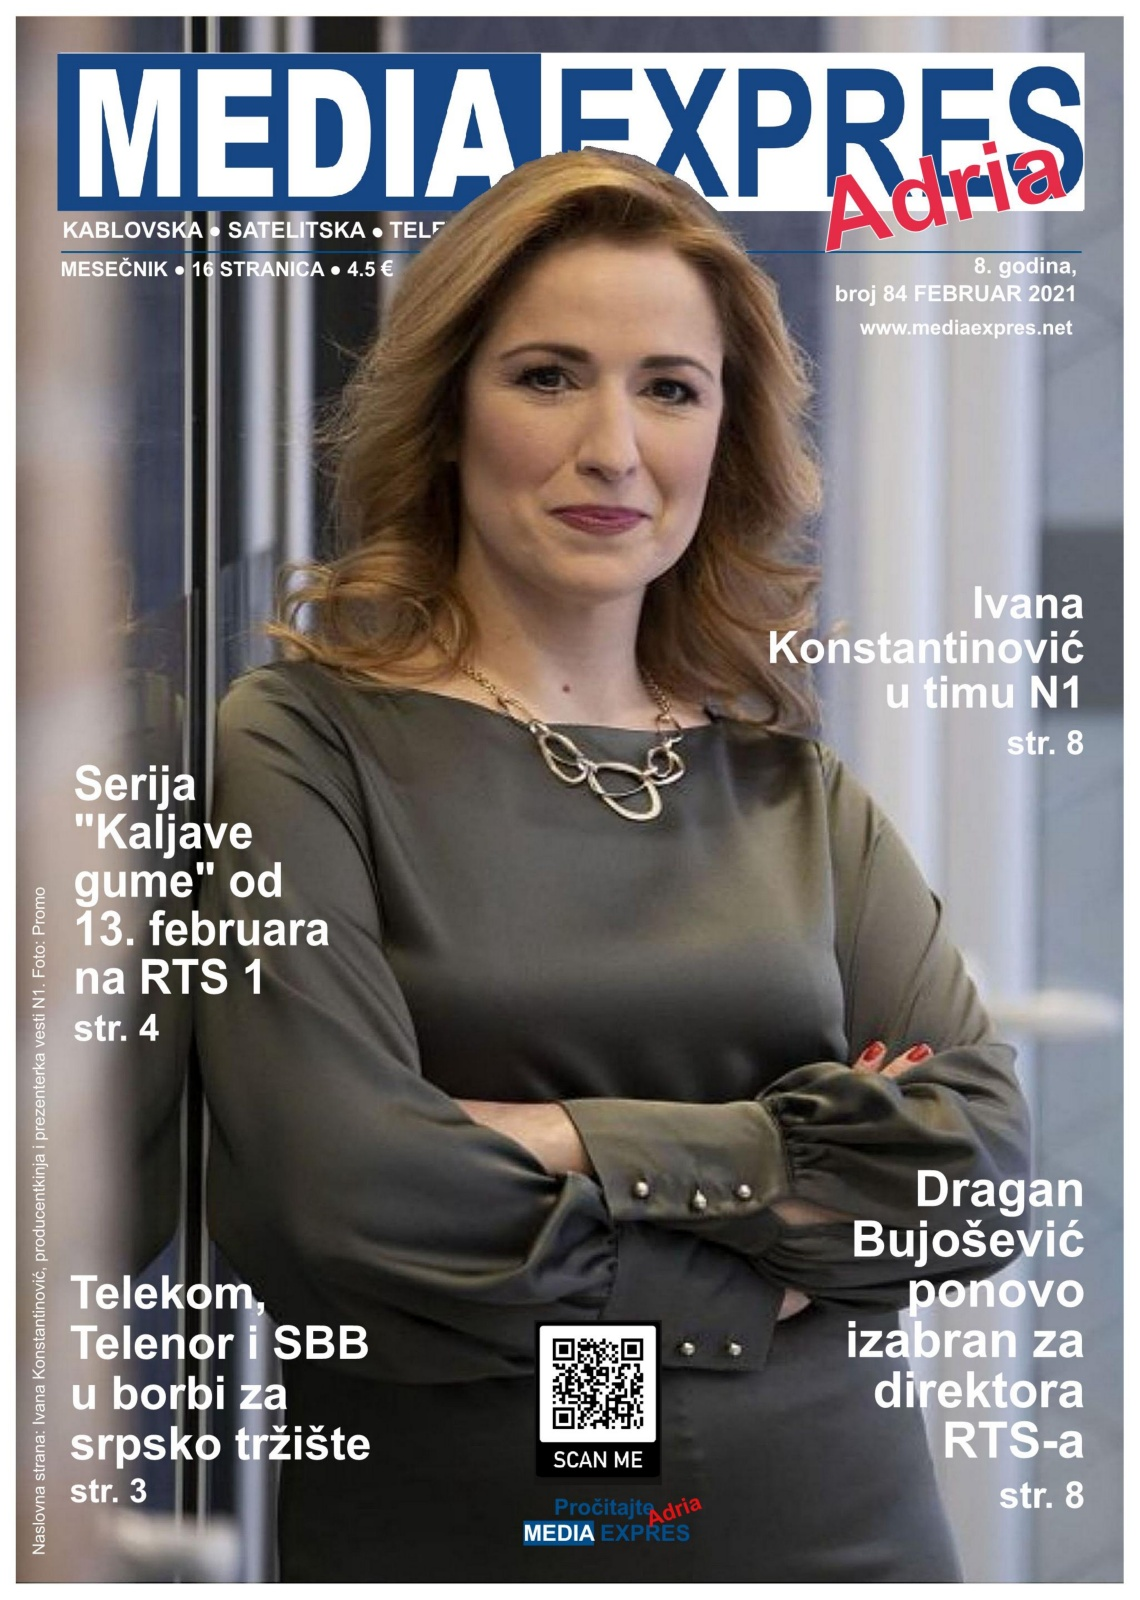 Media Expres Adria No. 2 FEBRUAR 2021 1st Cover